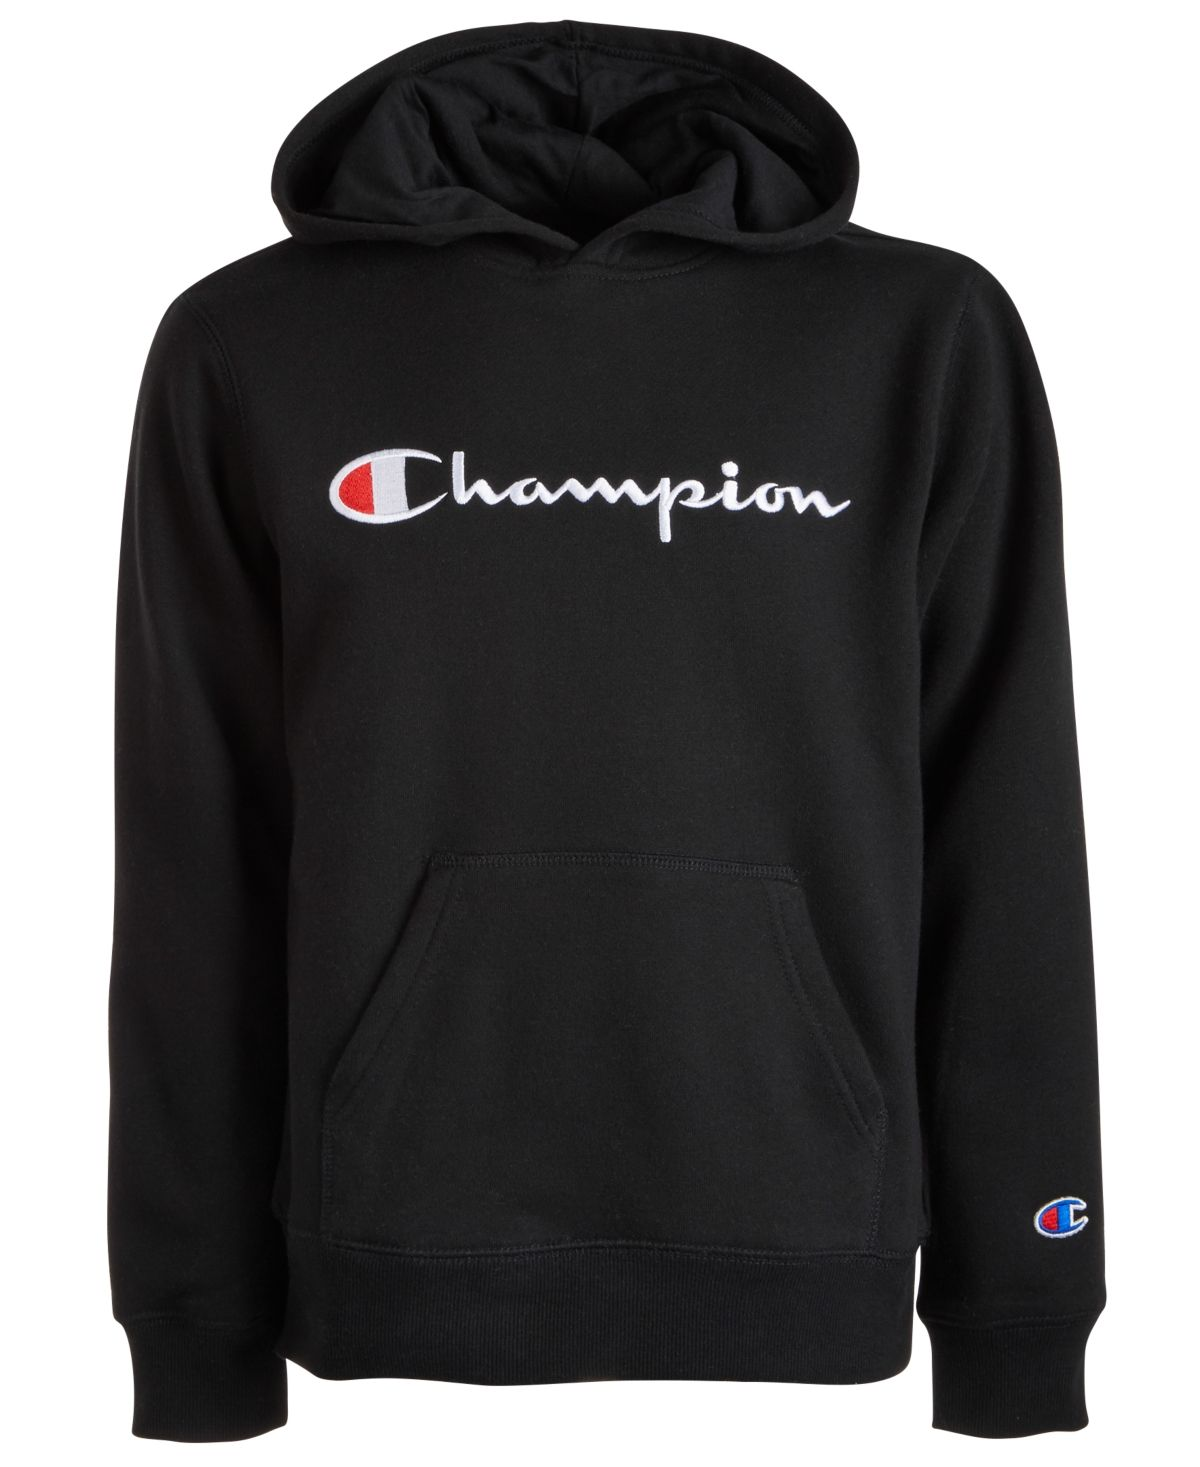 Champion Big Boys Embroidered Pullover Fleece Hoodie & Reviews - Sweaters - Kids - Macy's